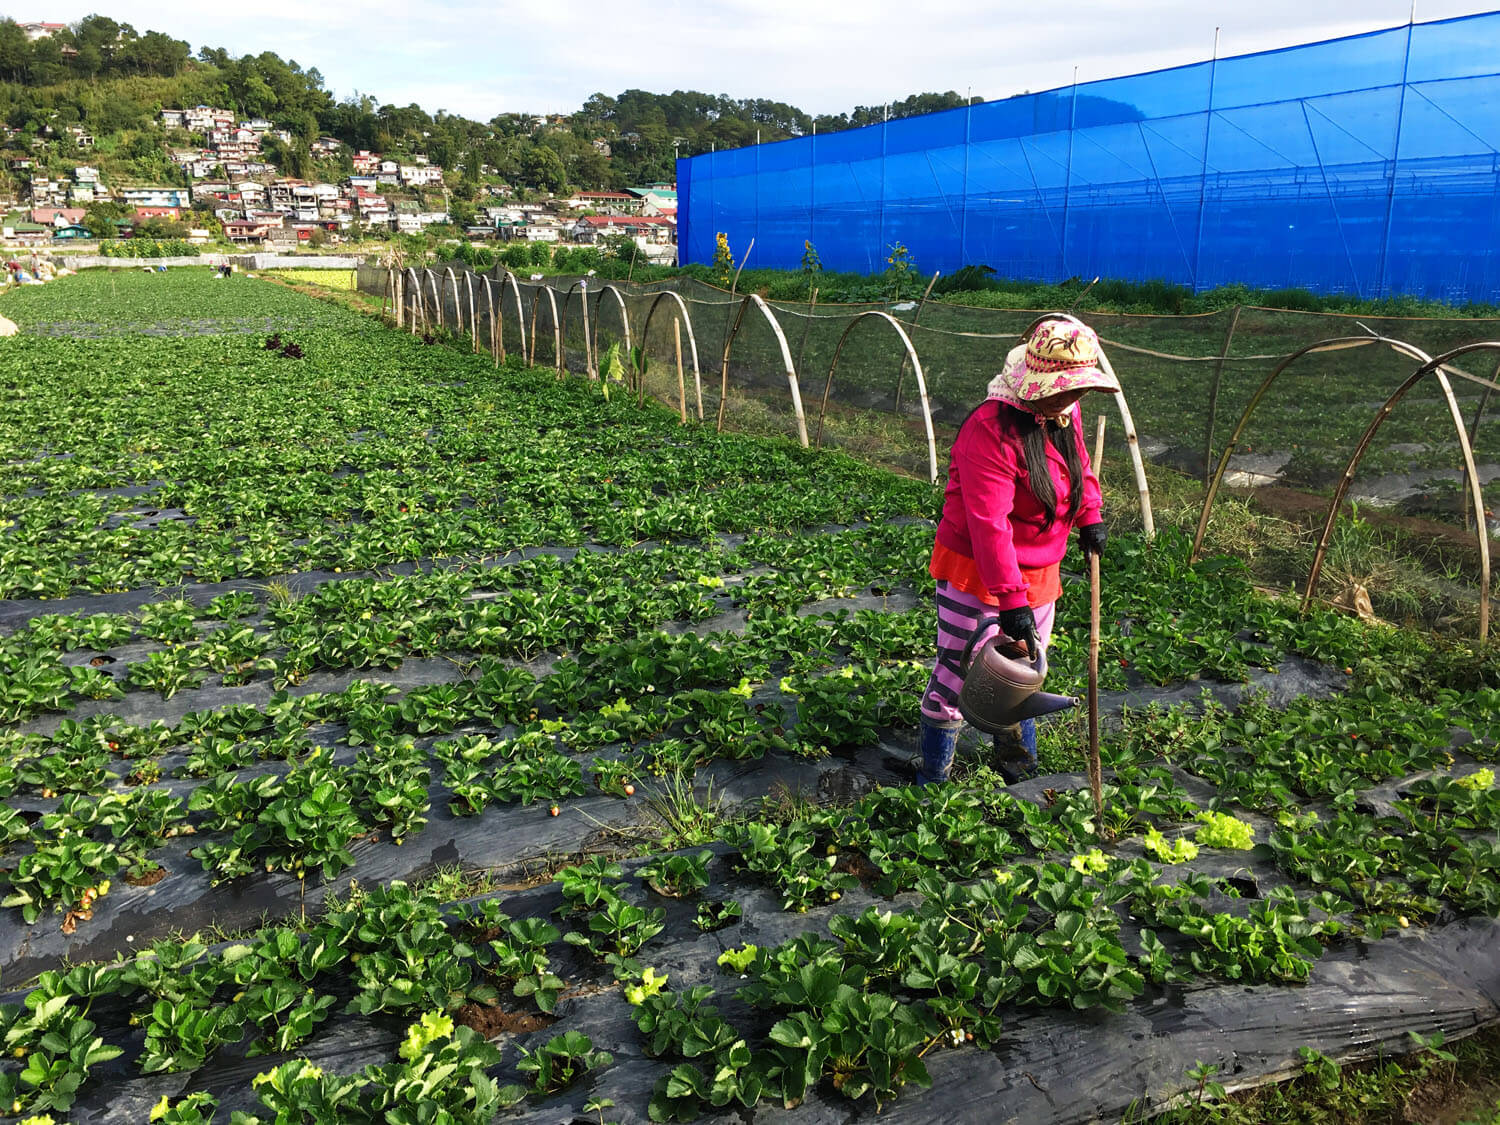 Photo of a Farmer in La Trinidad Benguet